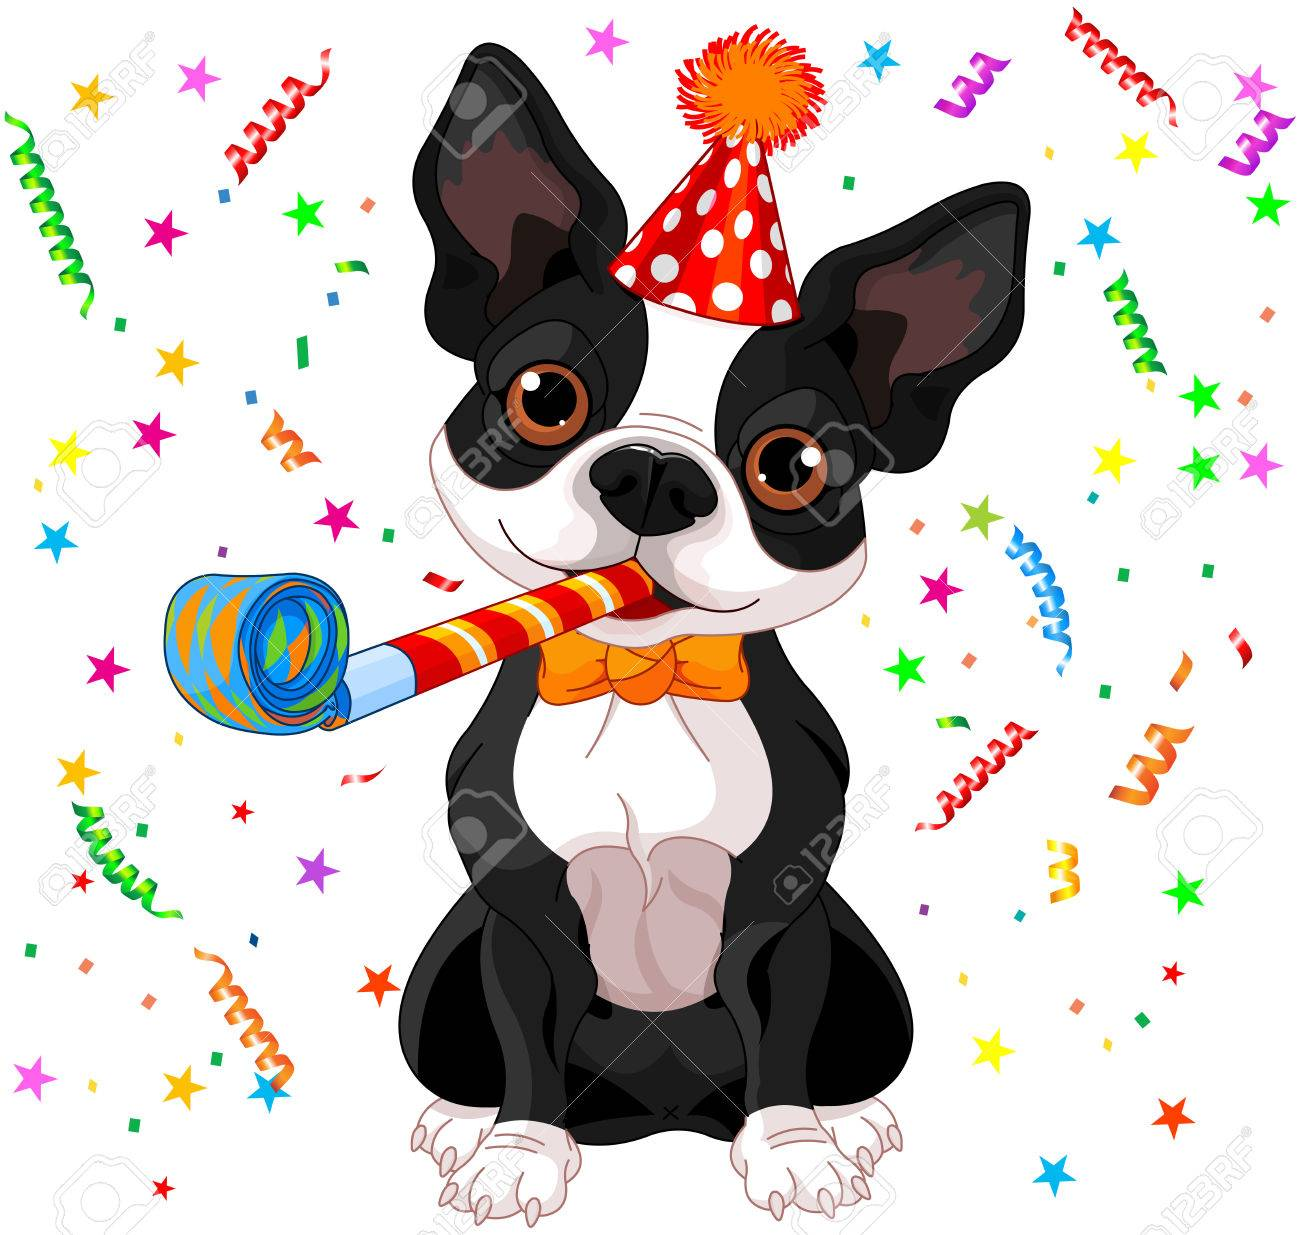 regrets - Avoir des regrets... 35588778-illustration-of-cute-boston-terrier-celebrating